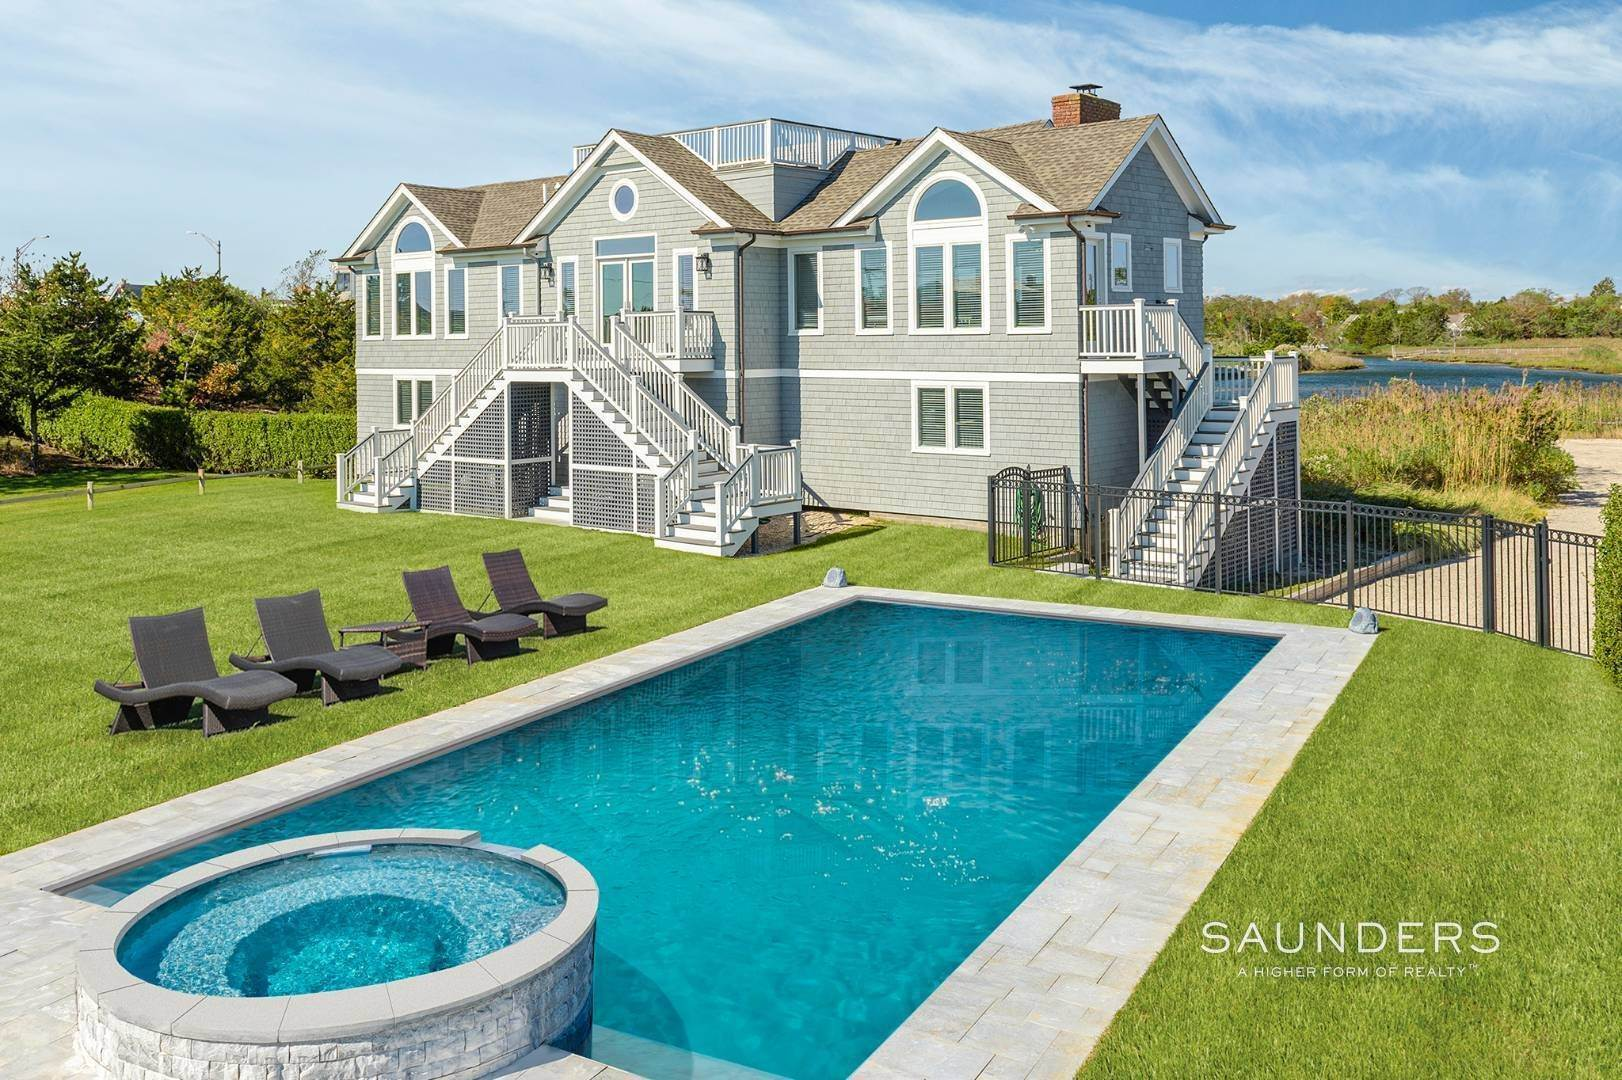 Single Family Homes for Sale at Quogue Waterfront Beauty 115 Dune Road, Quogue Village, Southampton Town, NY 11959